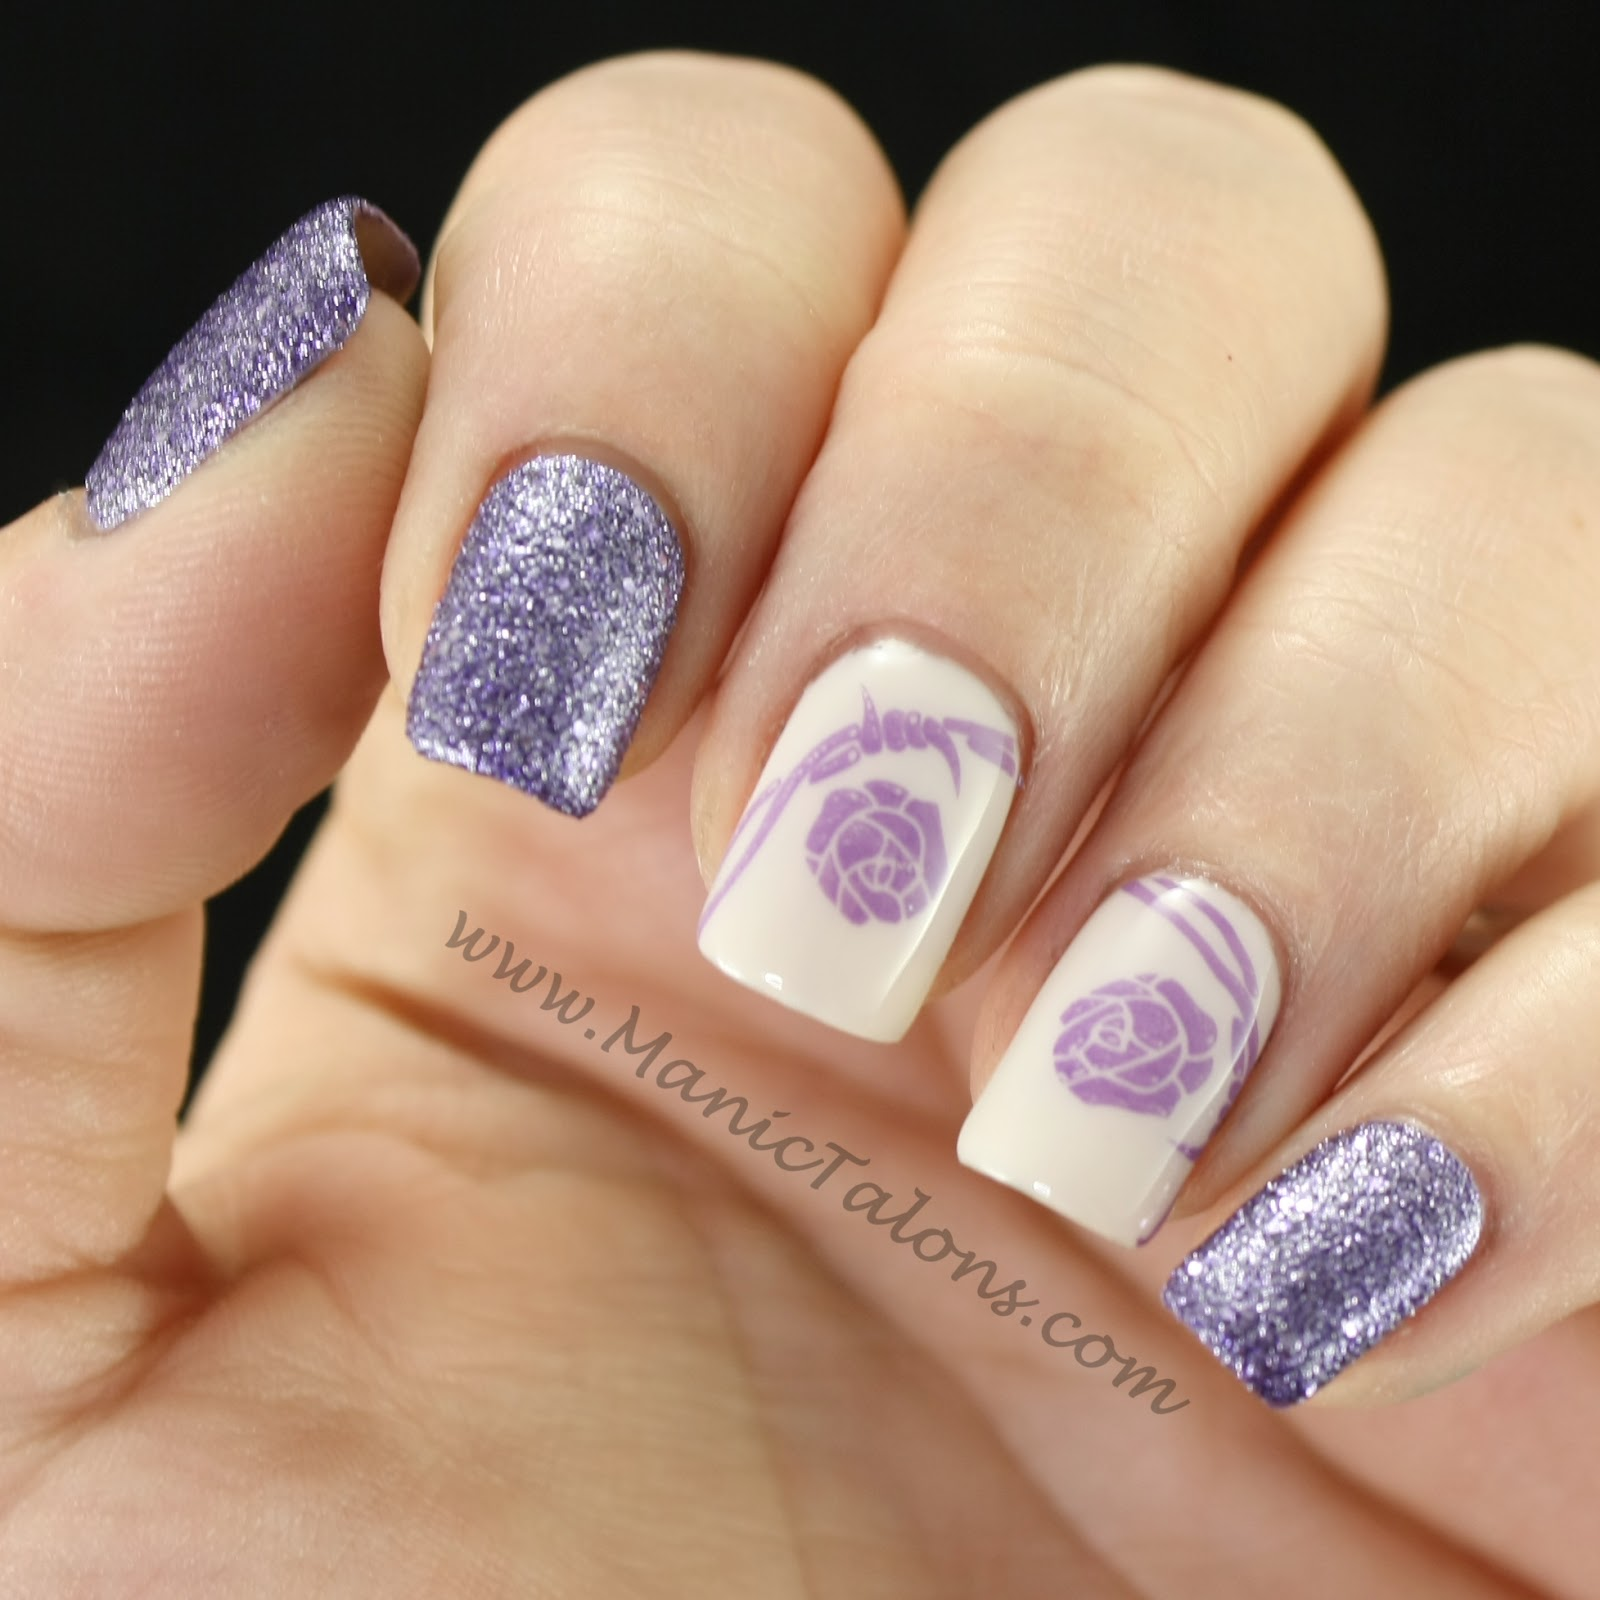 Manic Talons Nail Design: Weekly Mani: Stamping Challenge - Your ...